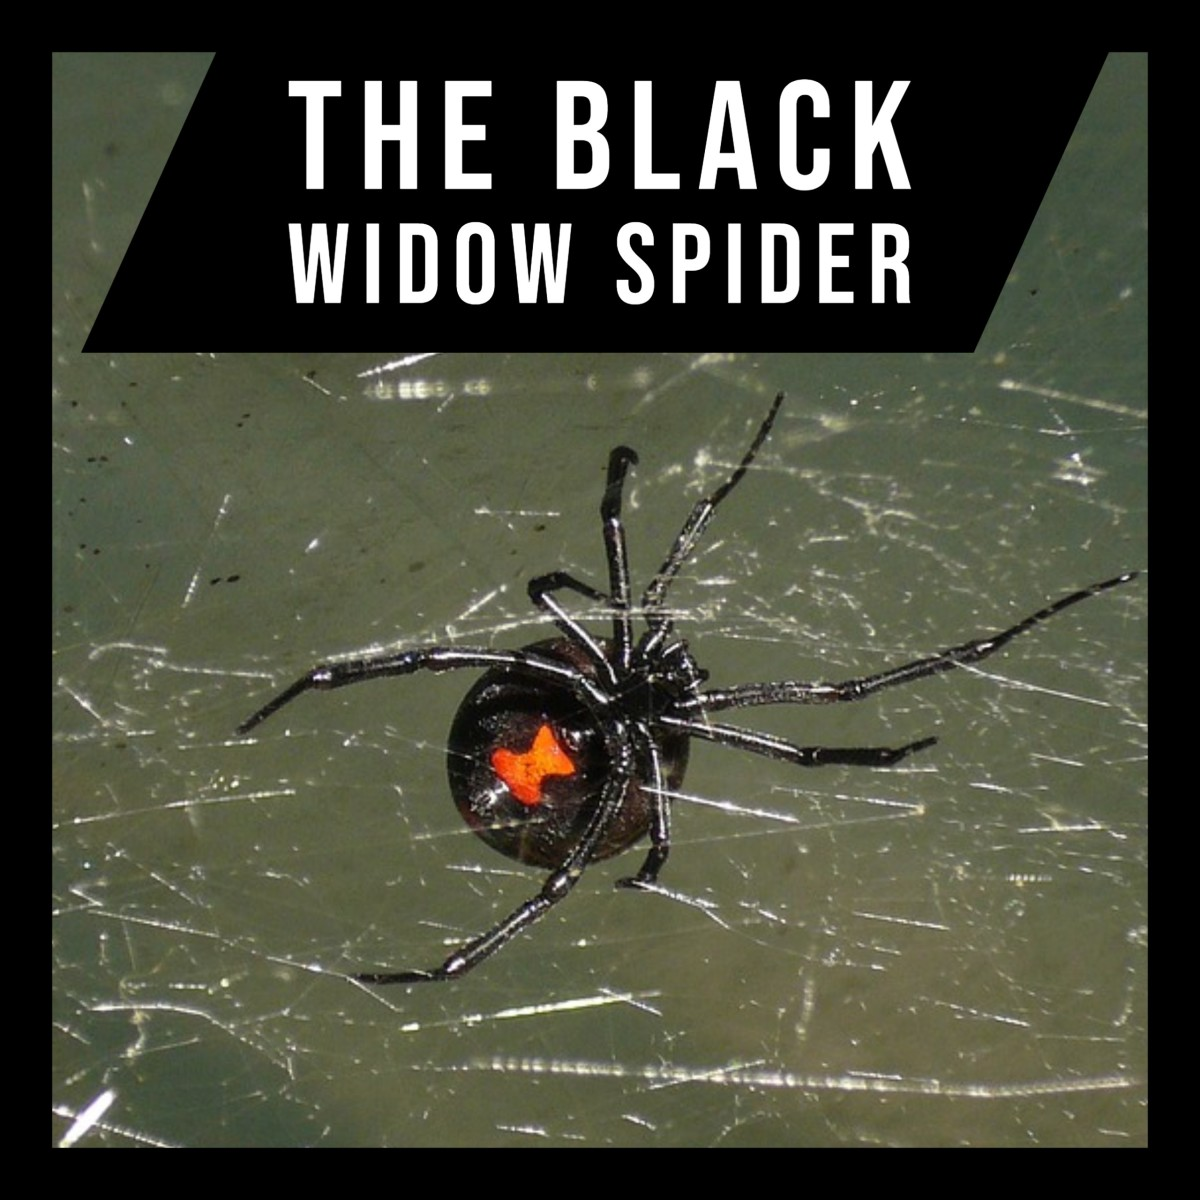 The deadly Black Widow Spider.